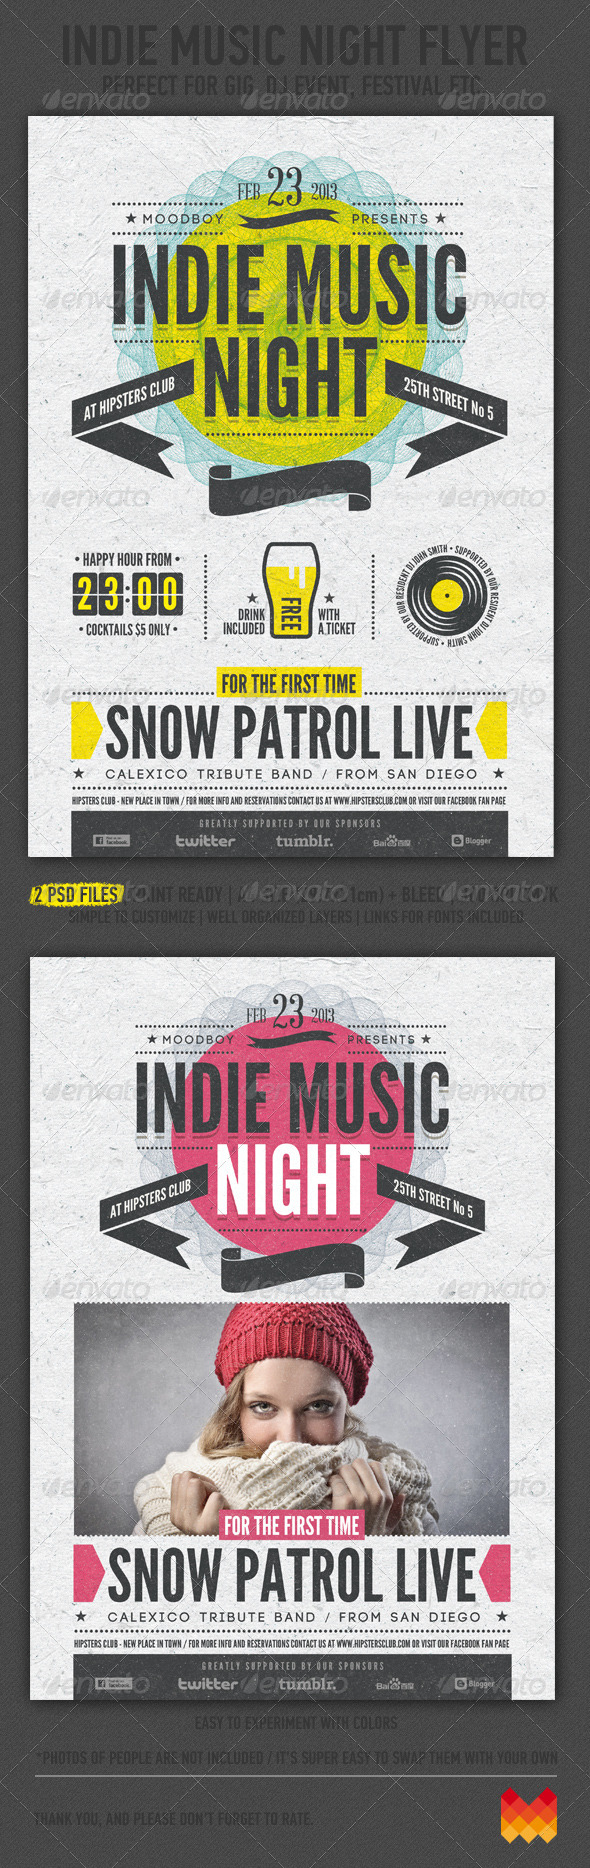 Indie Music Night Flyer Poster